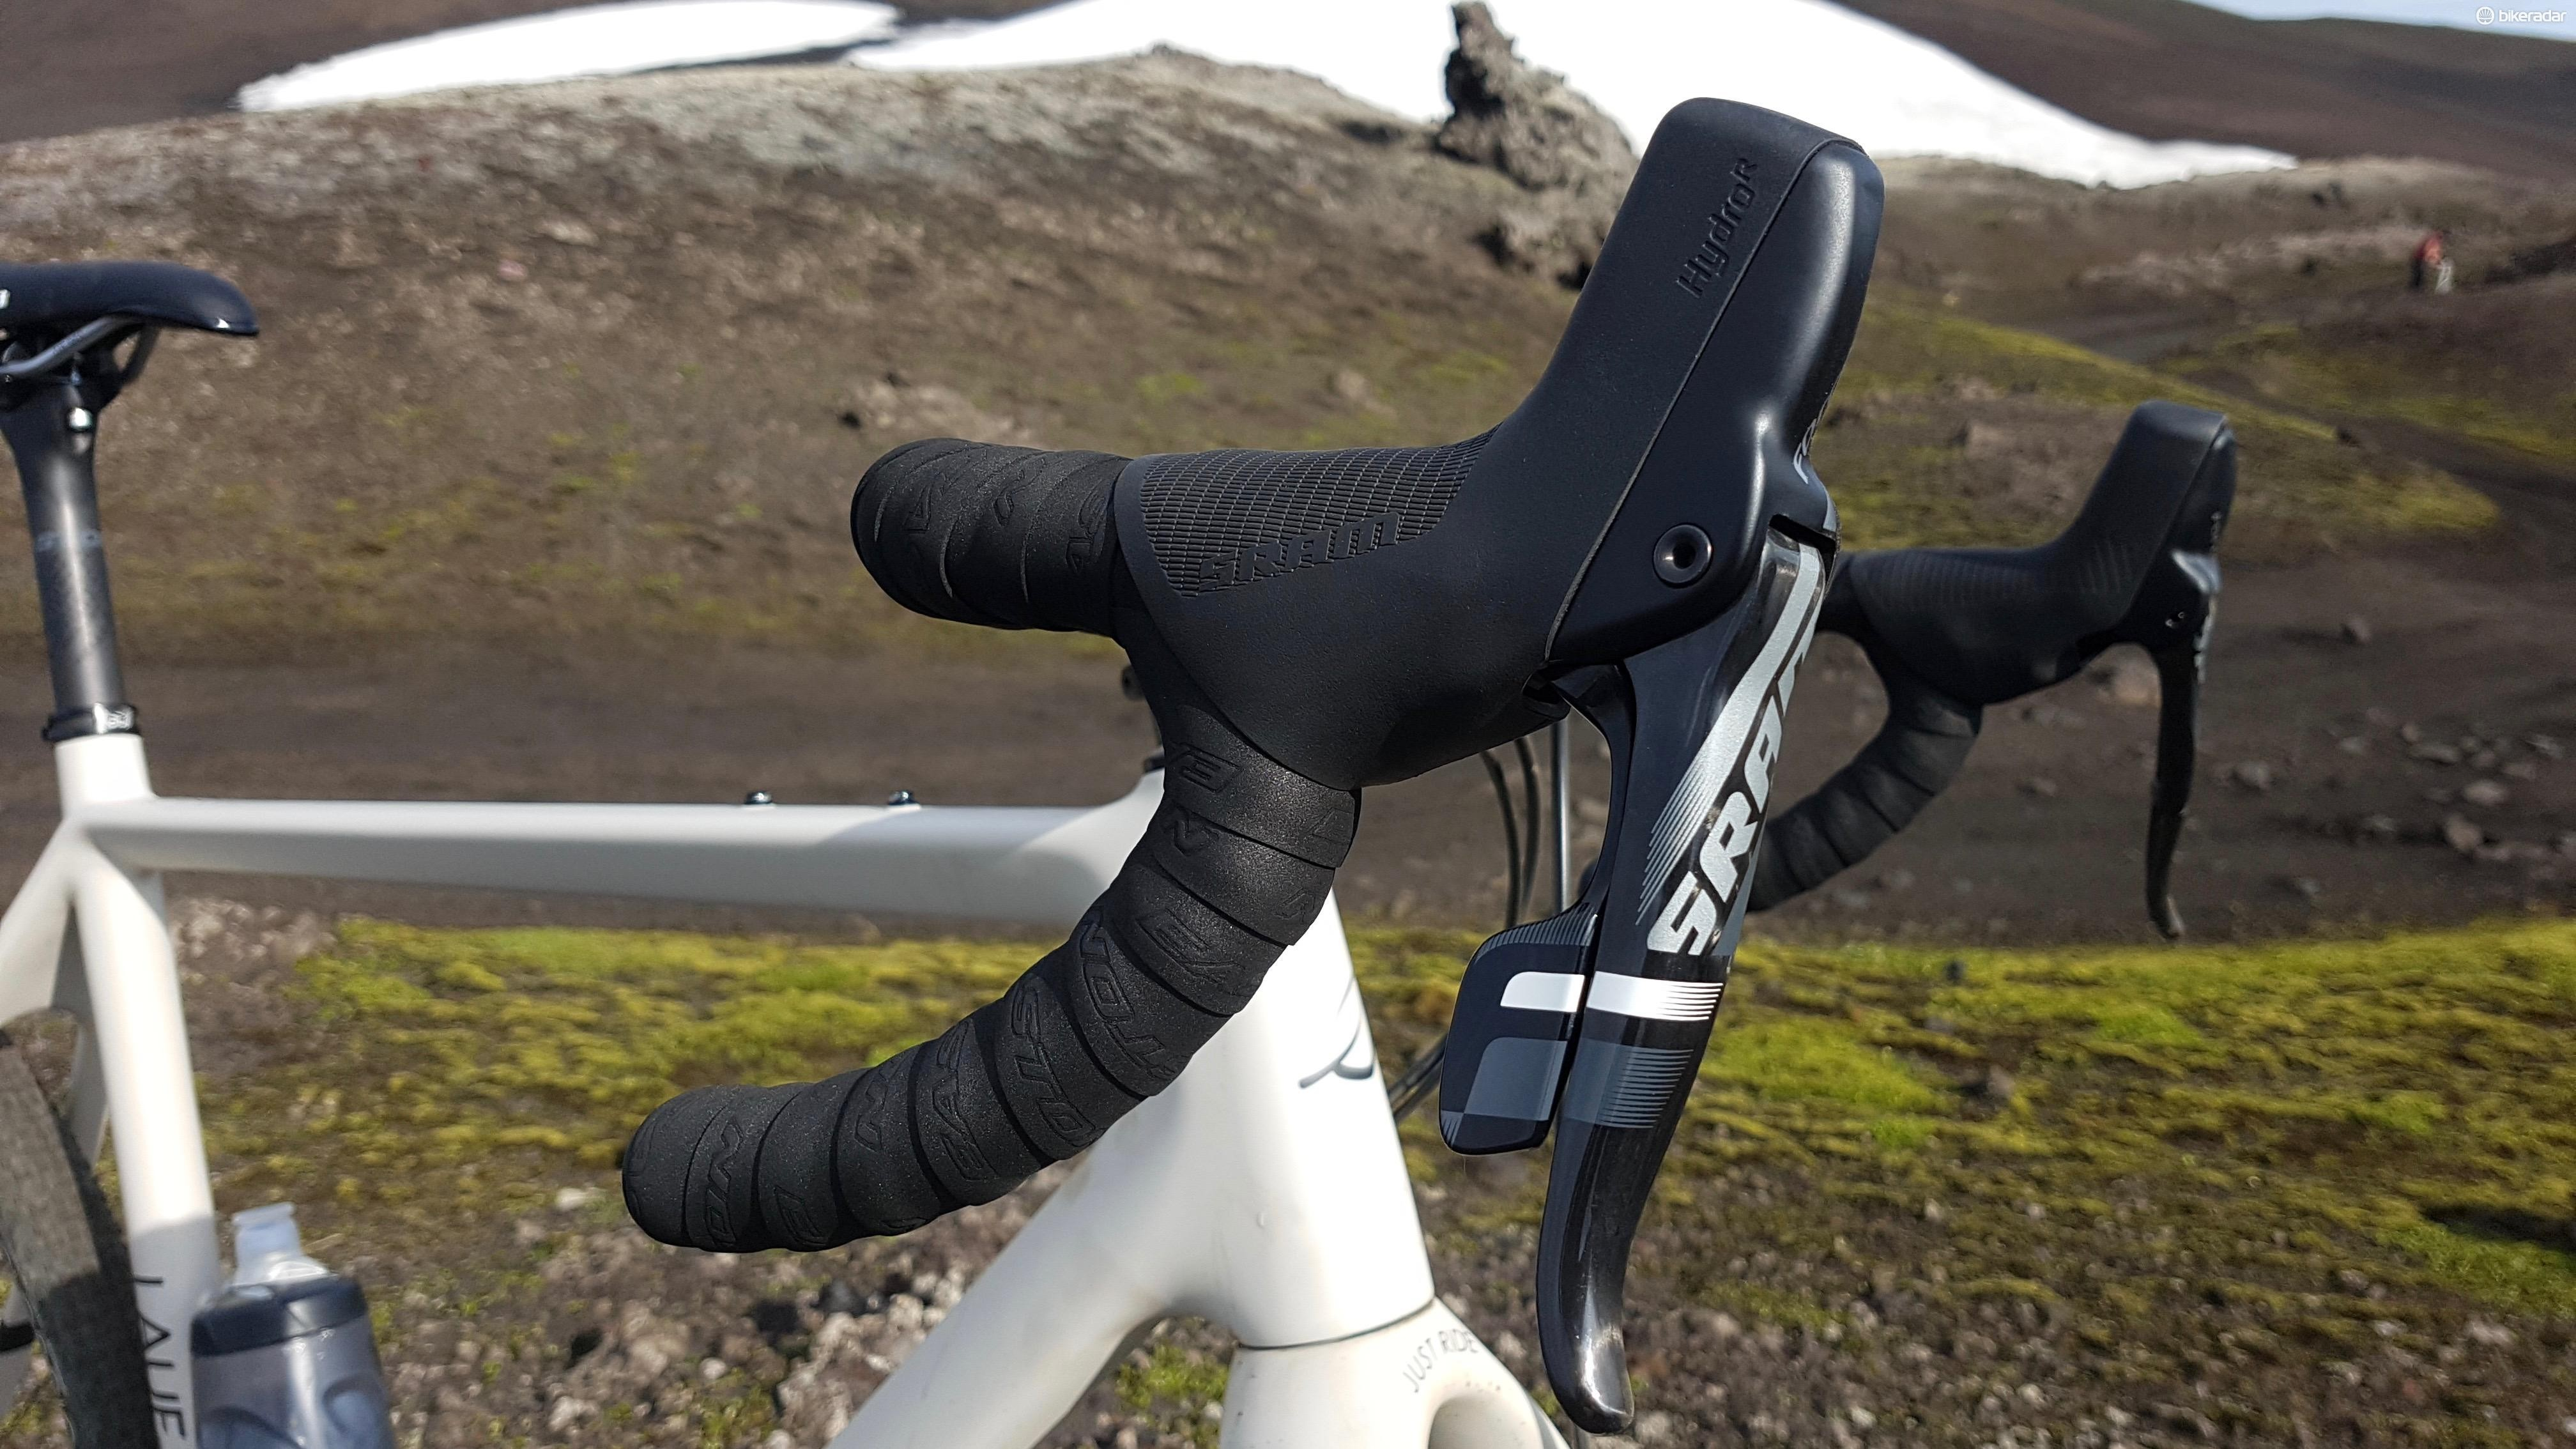 SRAM's hydro brakes proved reliable during the test